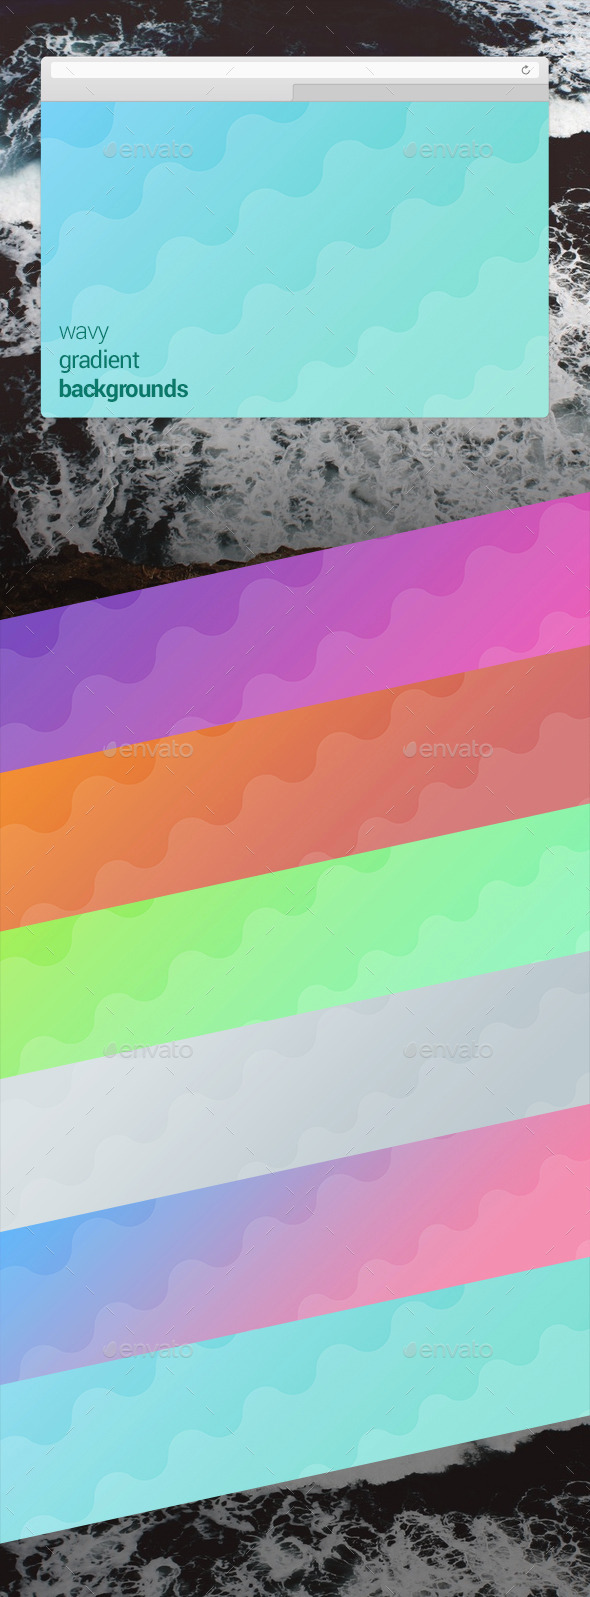 Wavy Gradient Backgrounds